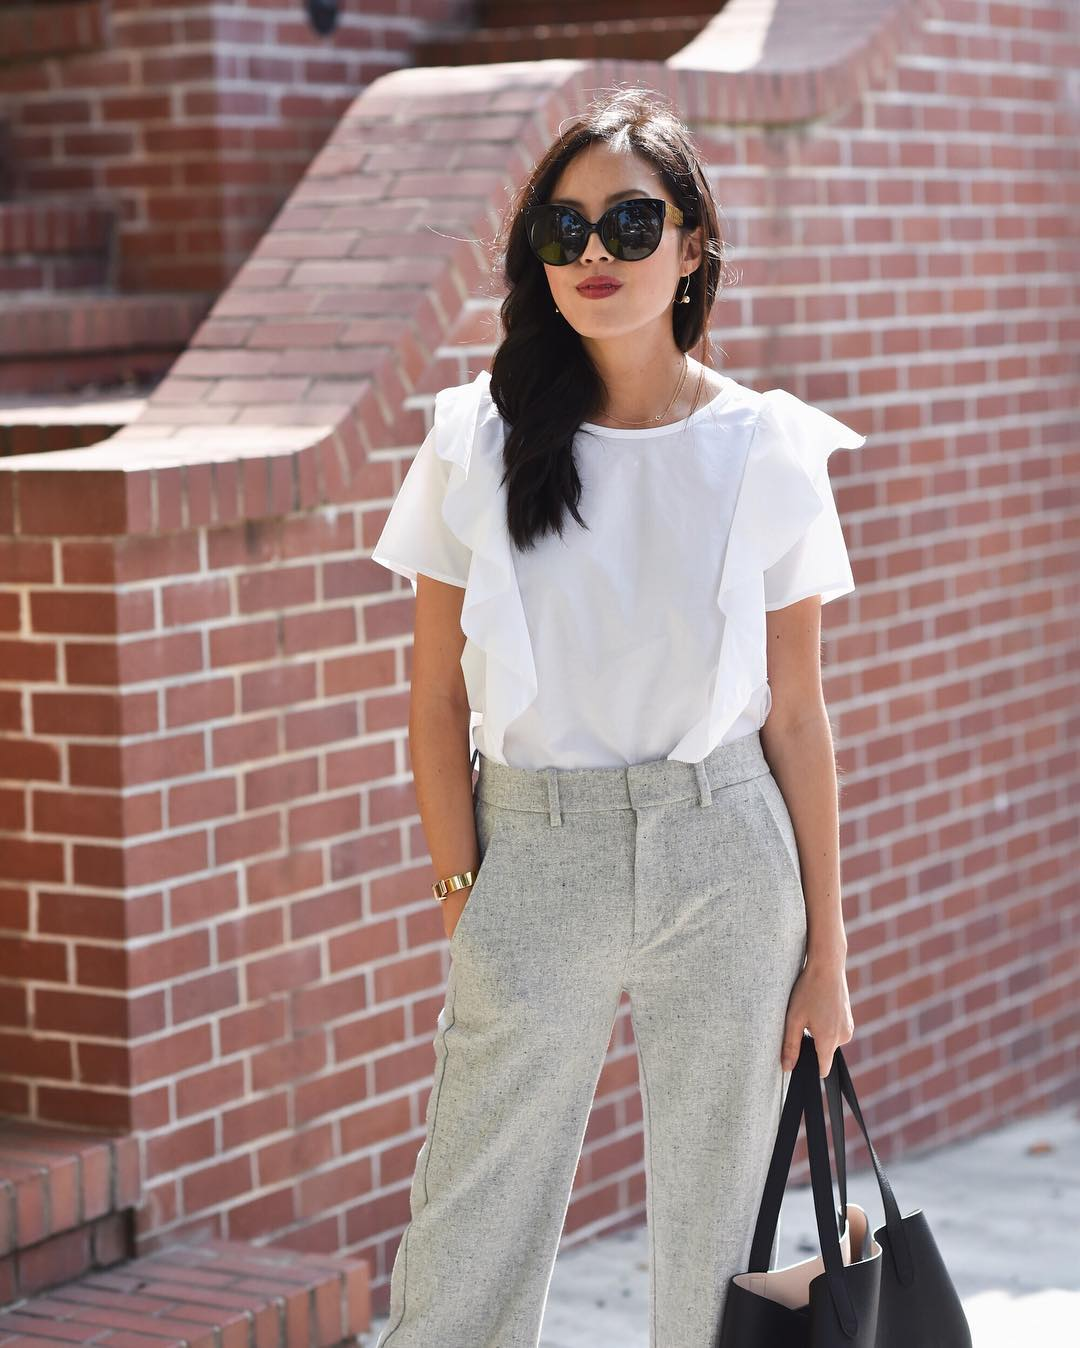 Crisp White Shirt With Ruffles Paired With High Waist Pant